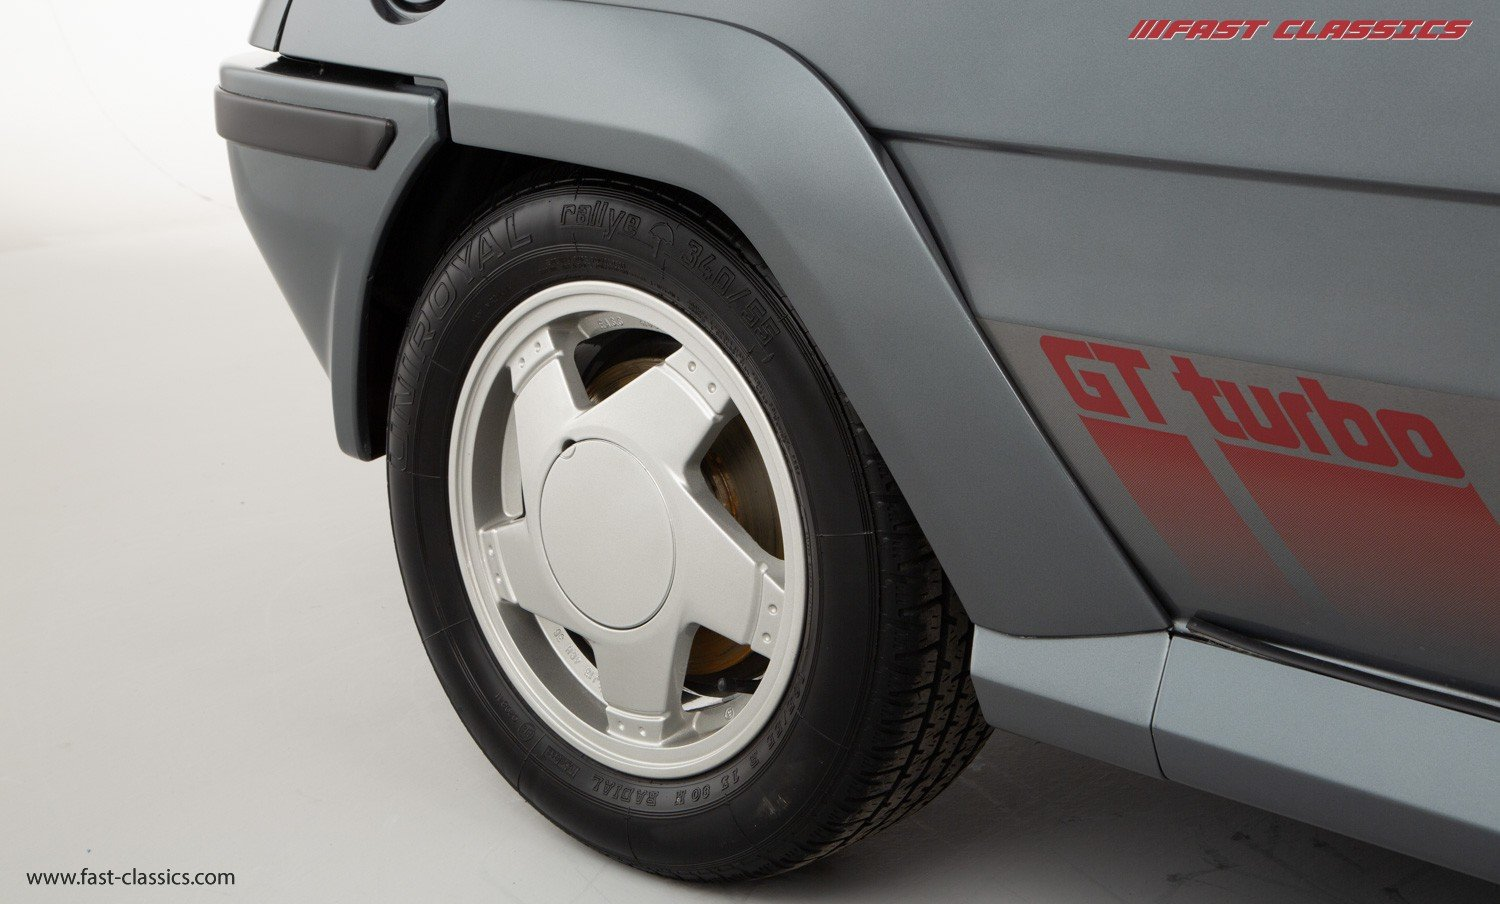 1991 RENAULT R5 GT TURBO // UK RHD // 50K MILES // LATE PRODUCTIO For Sale (picture 21 of 21)